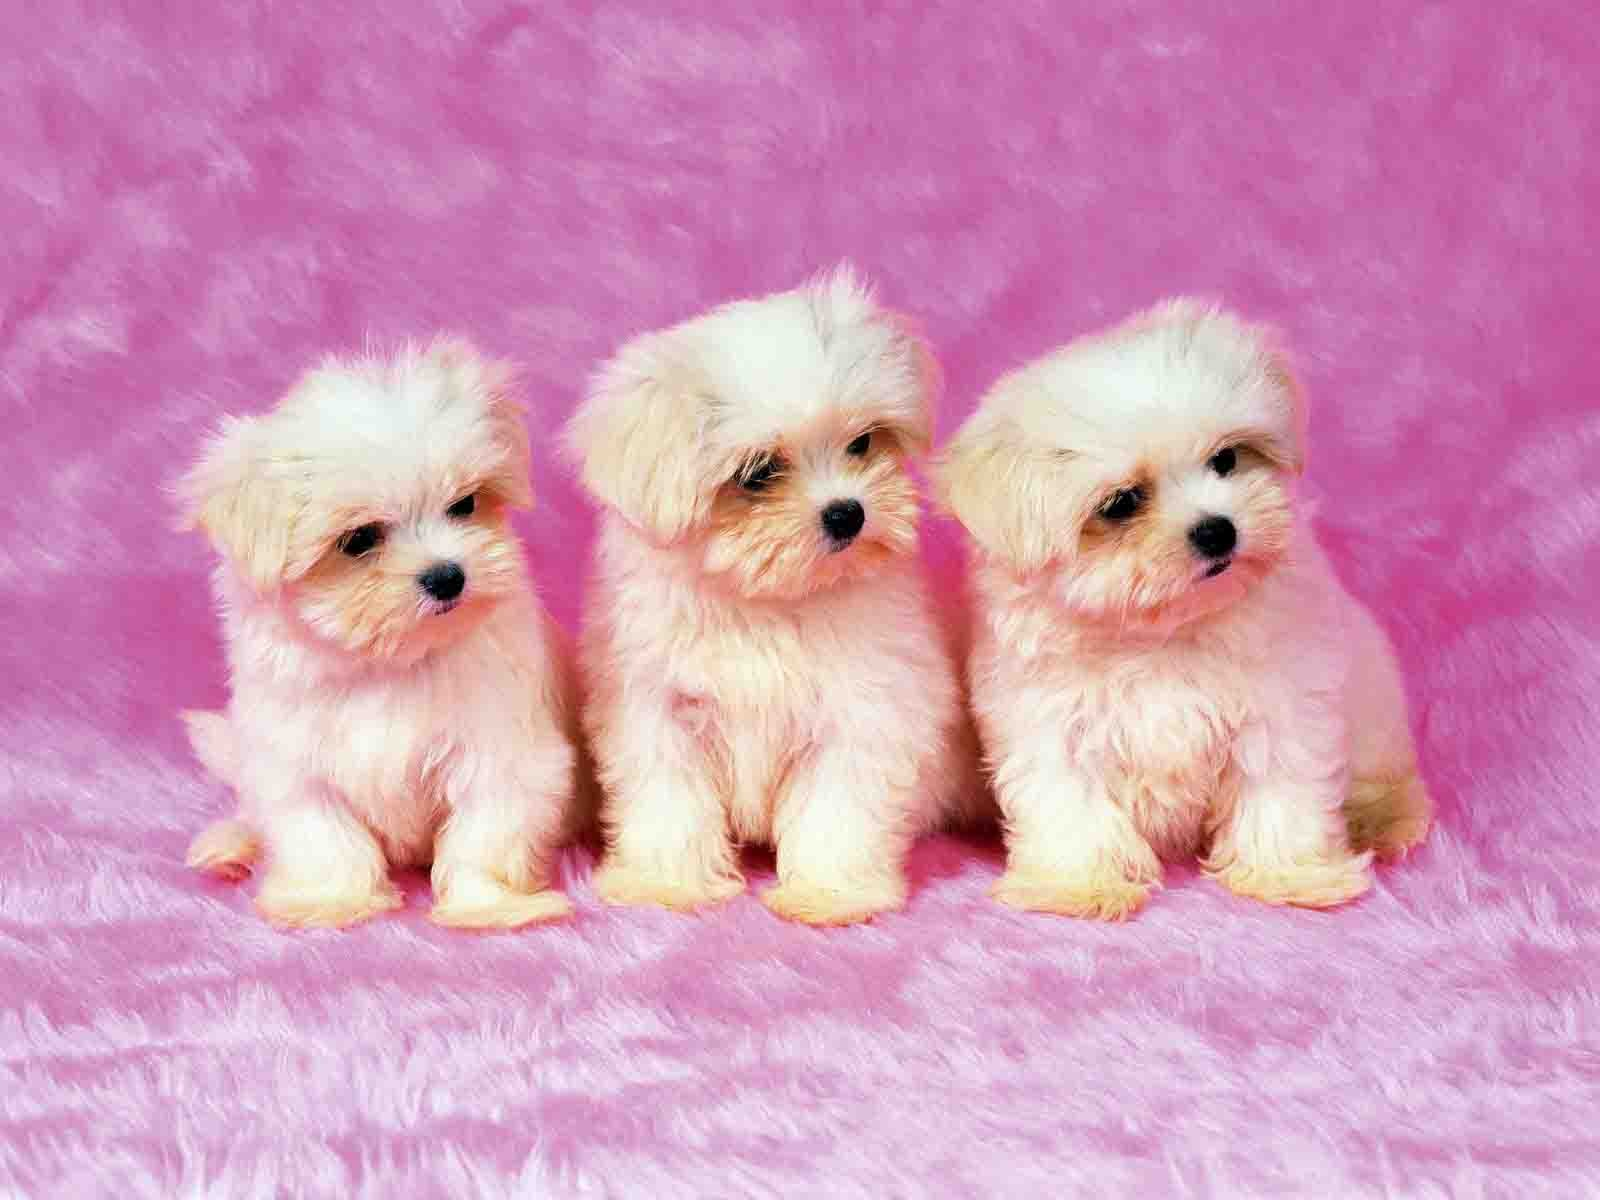 Cute Desktop Backgrounds Tumblr Desktop Image 1600x1200